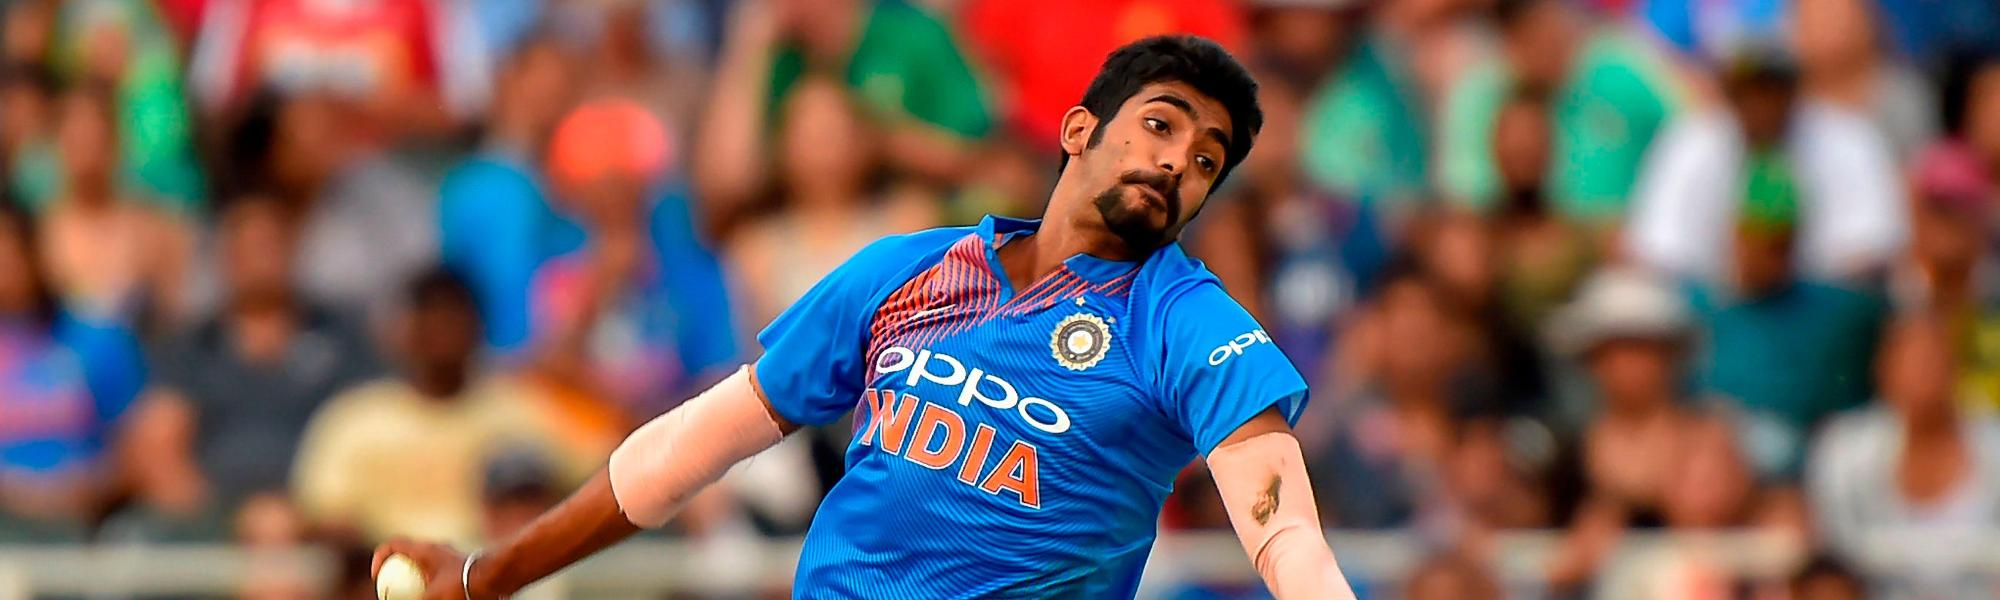 Jasprit Bumrah has returned home and will undergo rehabilitation